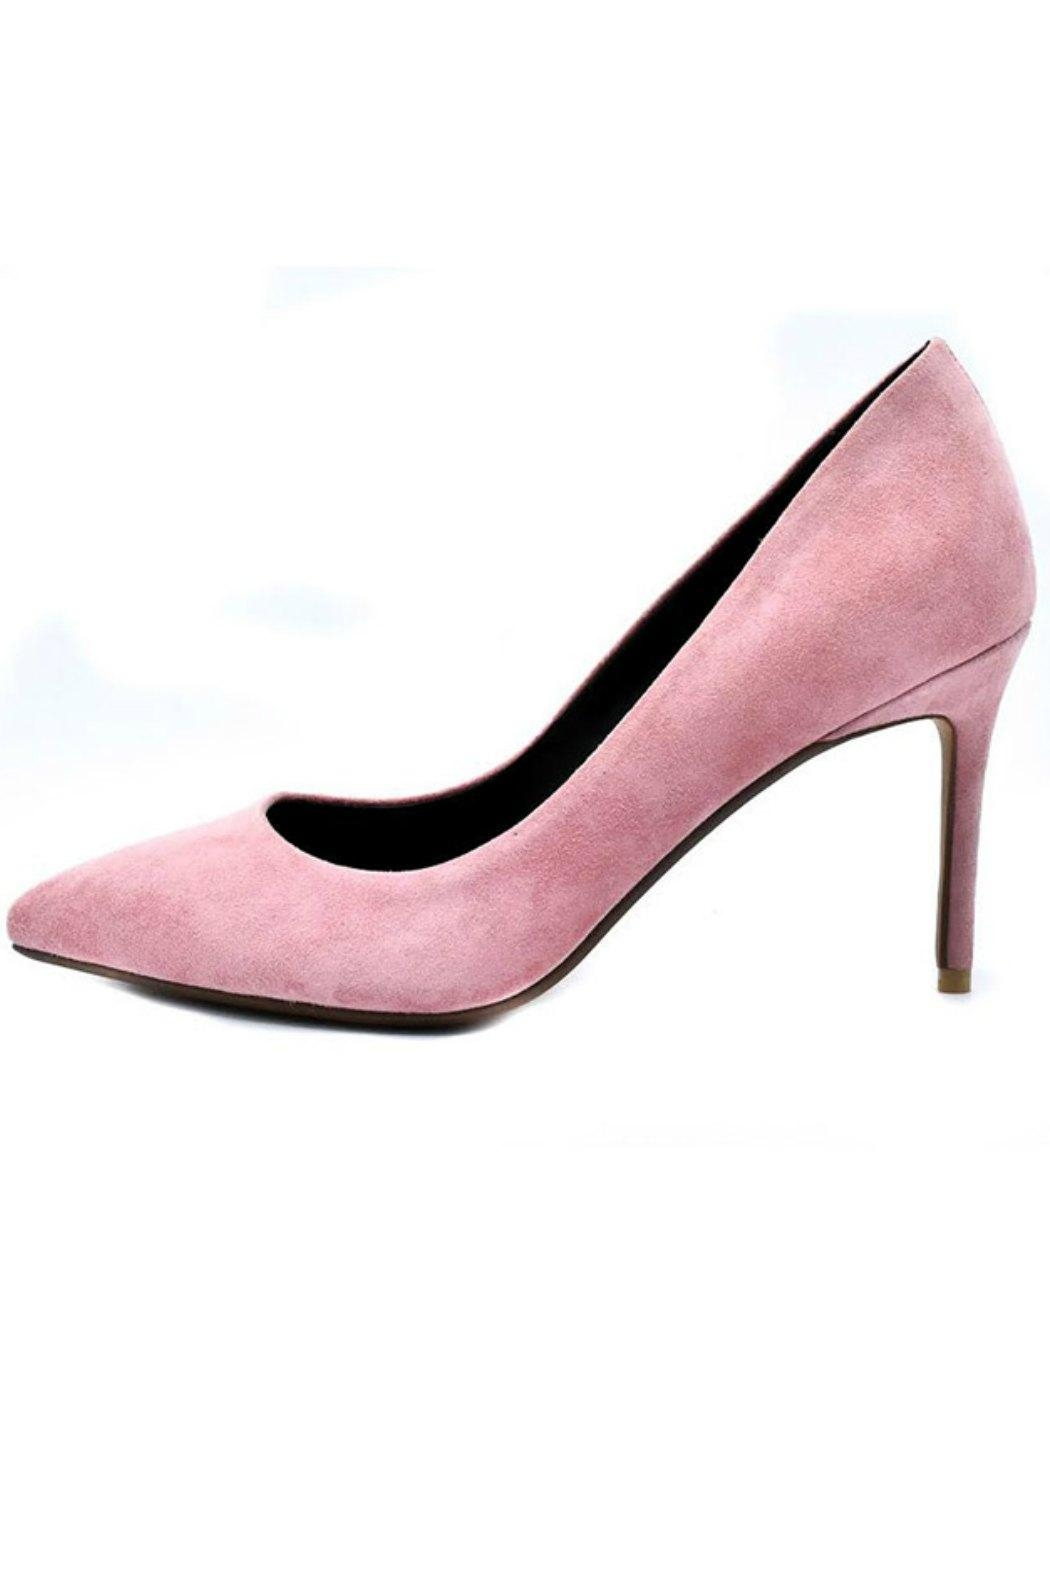 GOLO Pointy Heeled Pump - Front Cropped Image